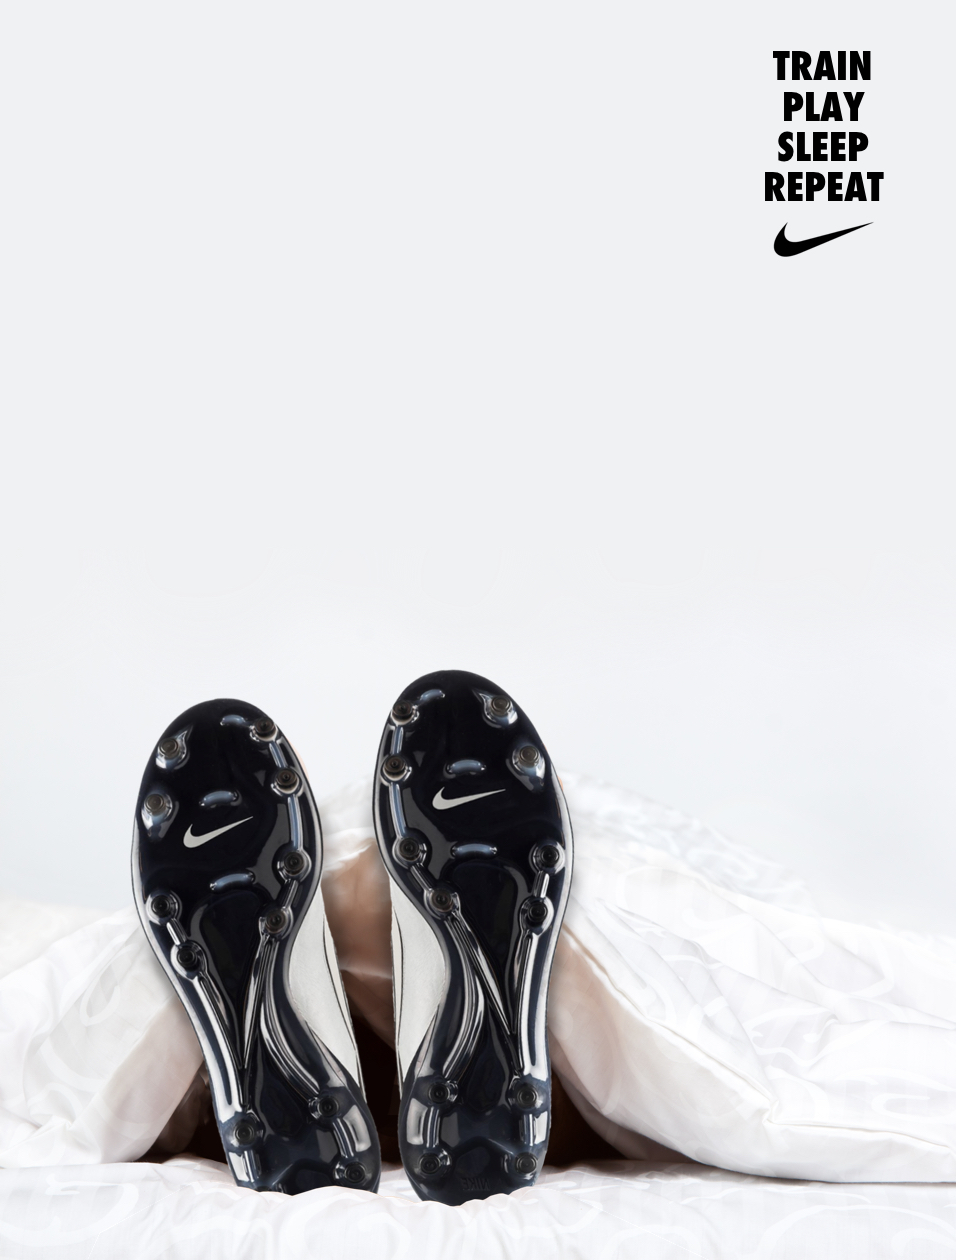 Nike football boots advertising idea - train play sleep repeat